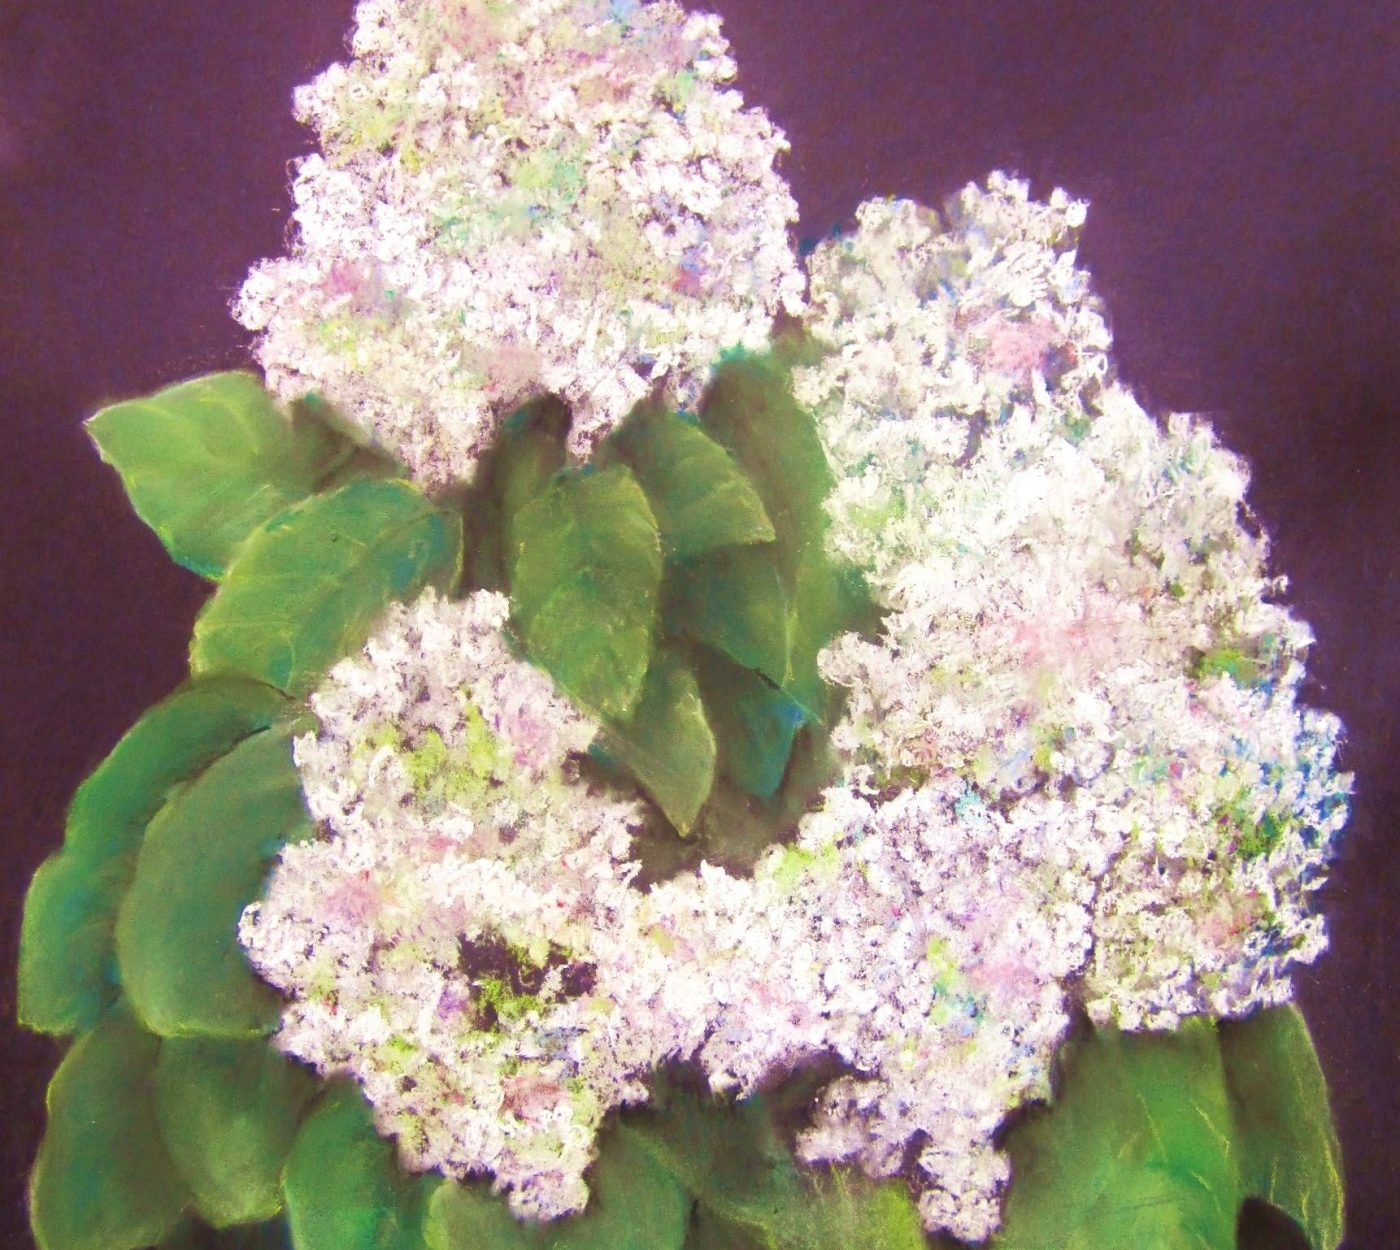 A painting of hydrangeas by High Corbin. Clicking this image will take you to our Current Exhibits page.